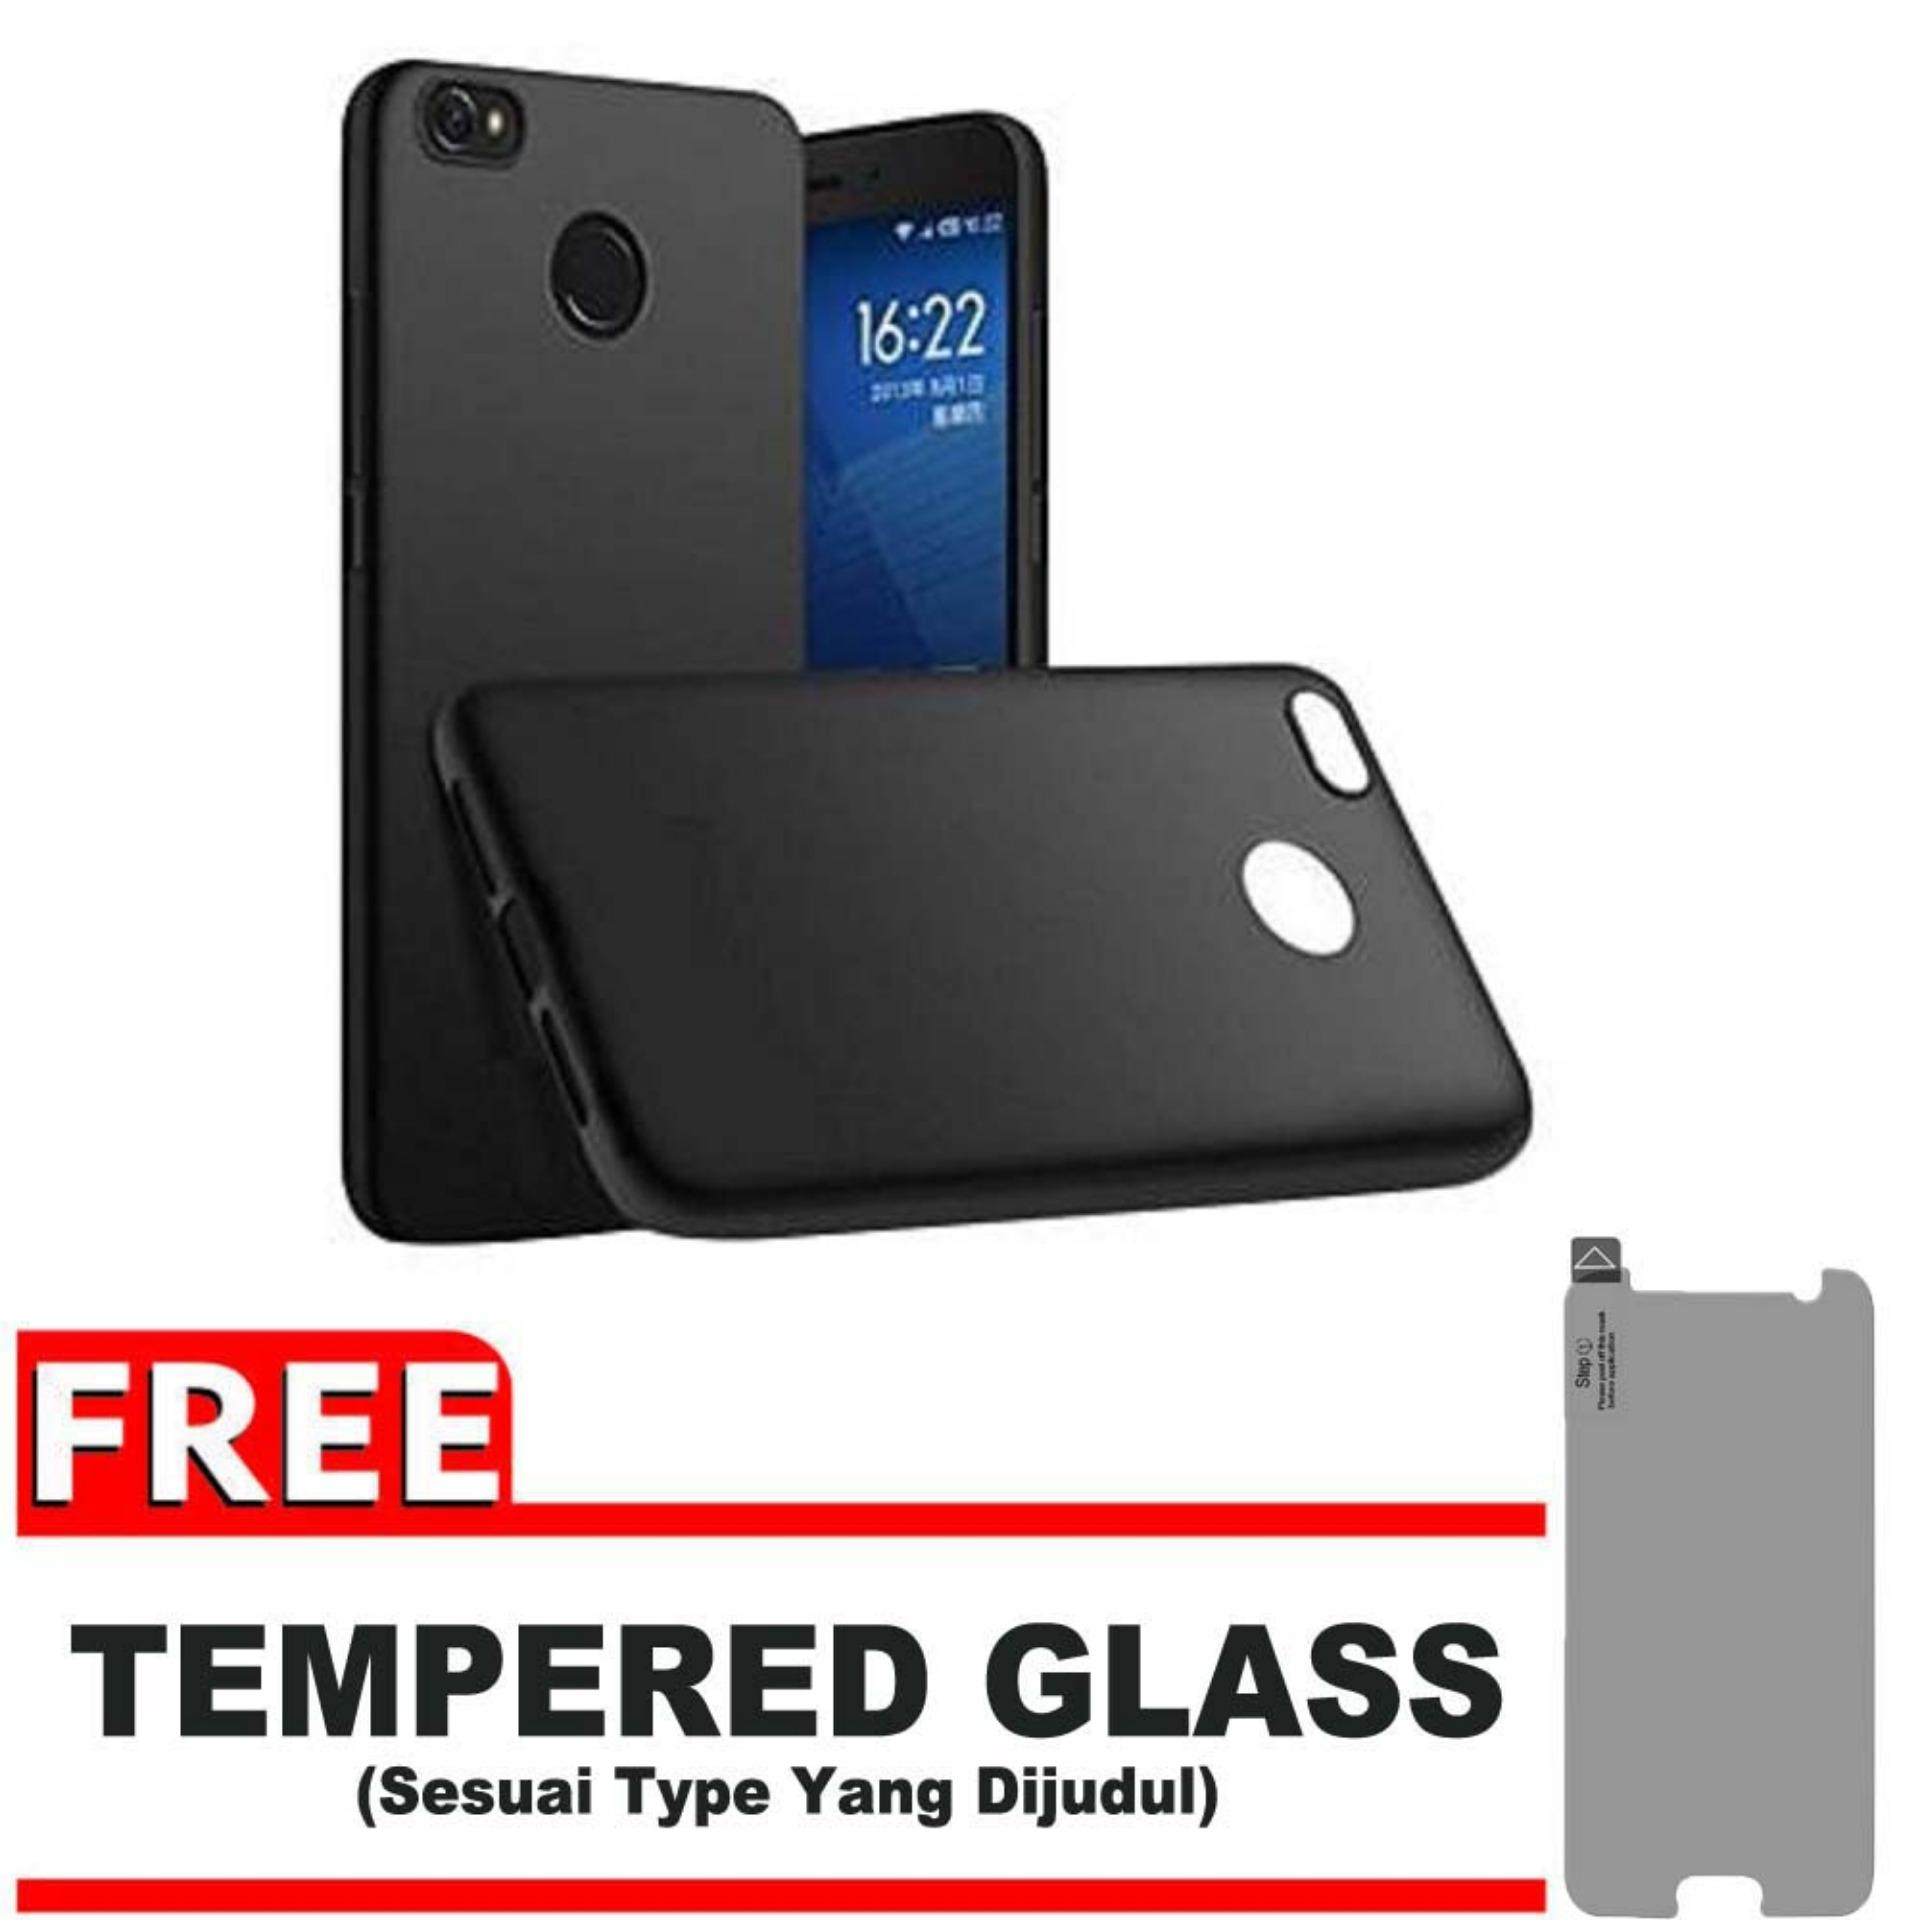 Tempered Glass Lg G3 Stylus D690 Screen Protector Putih Source Products . Source · DarkNight for